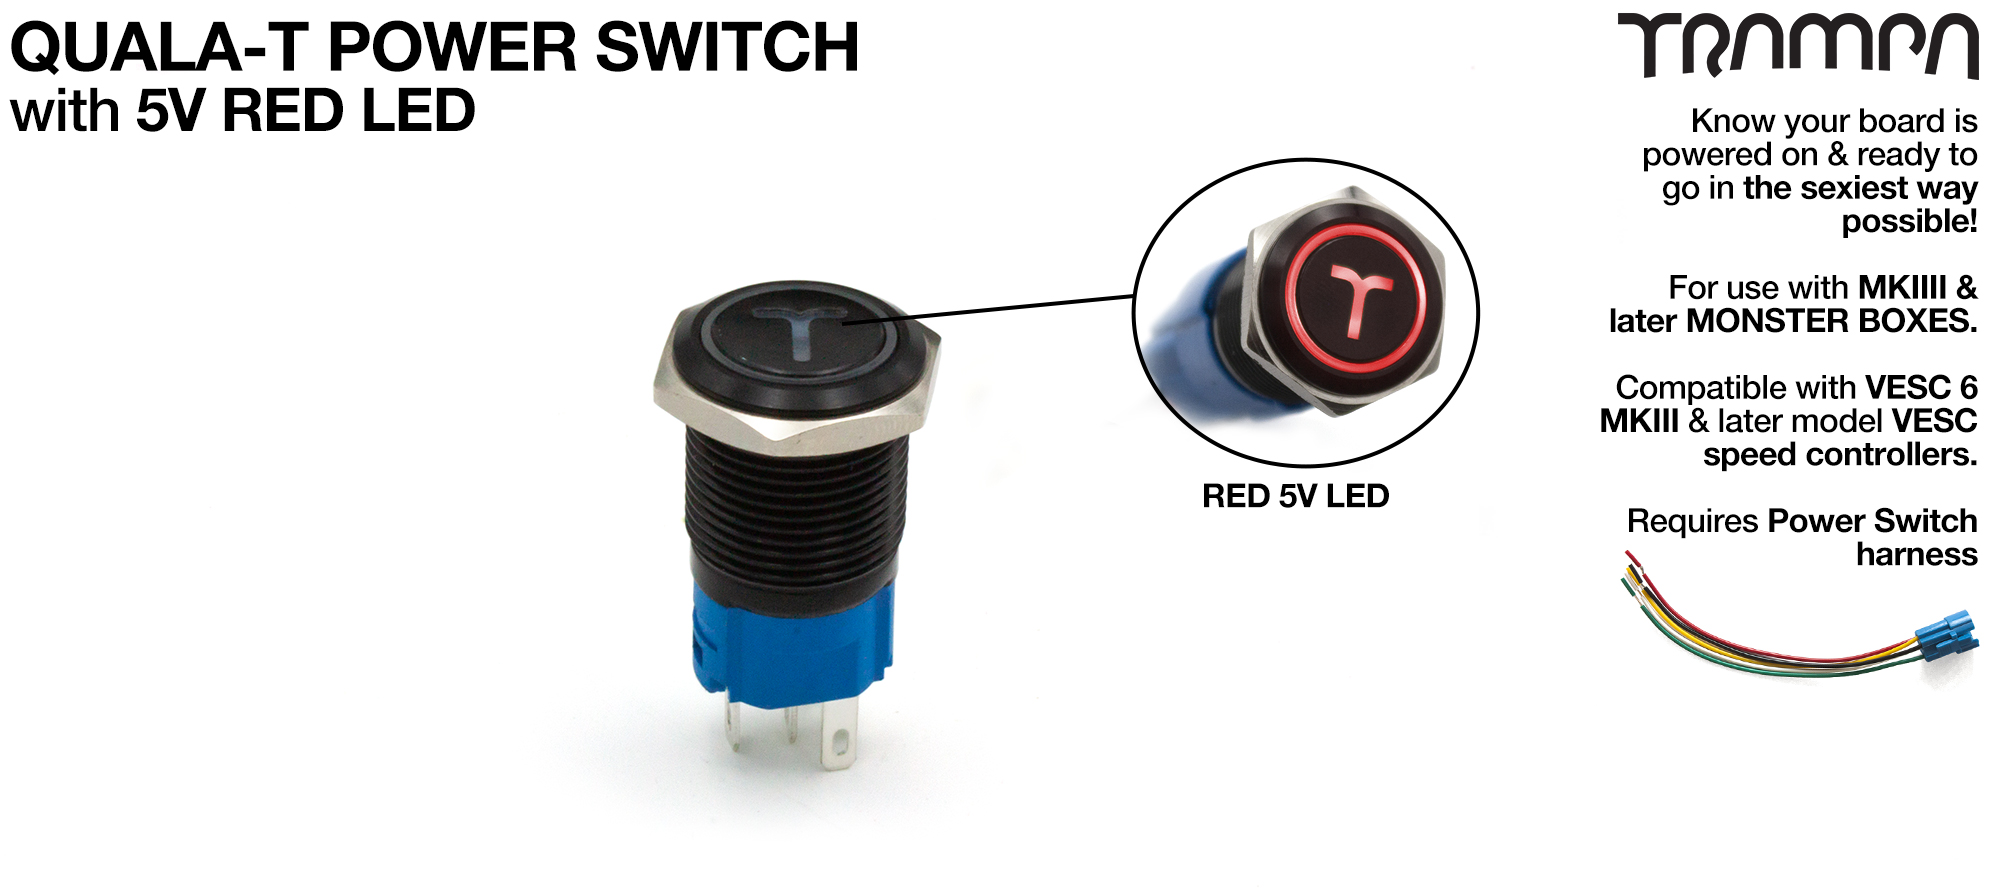 TRAMPA Switch with 5V RED LED QUALA-T & 16mm Stainless Steel Fixing Nut